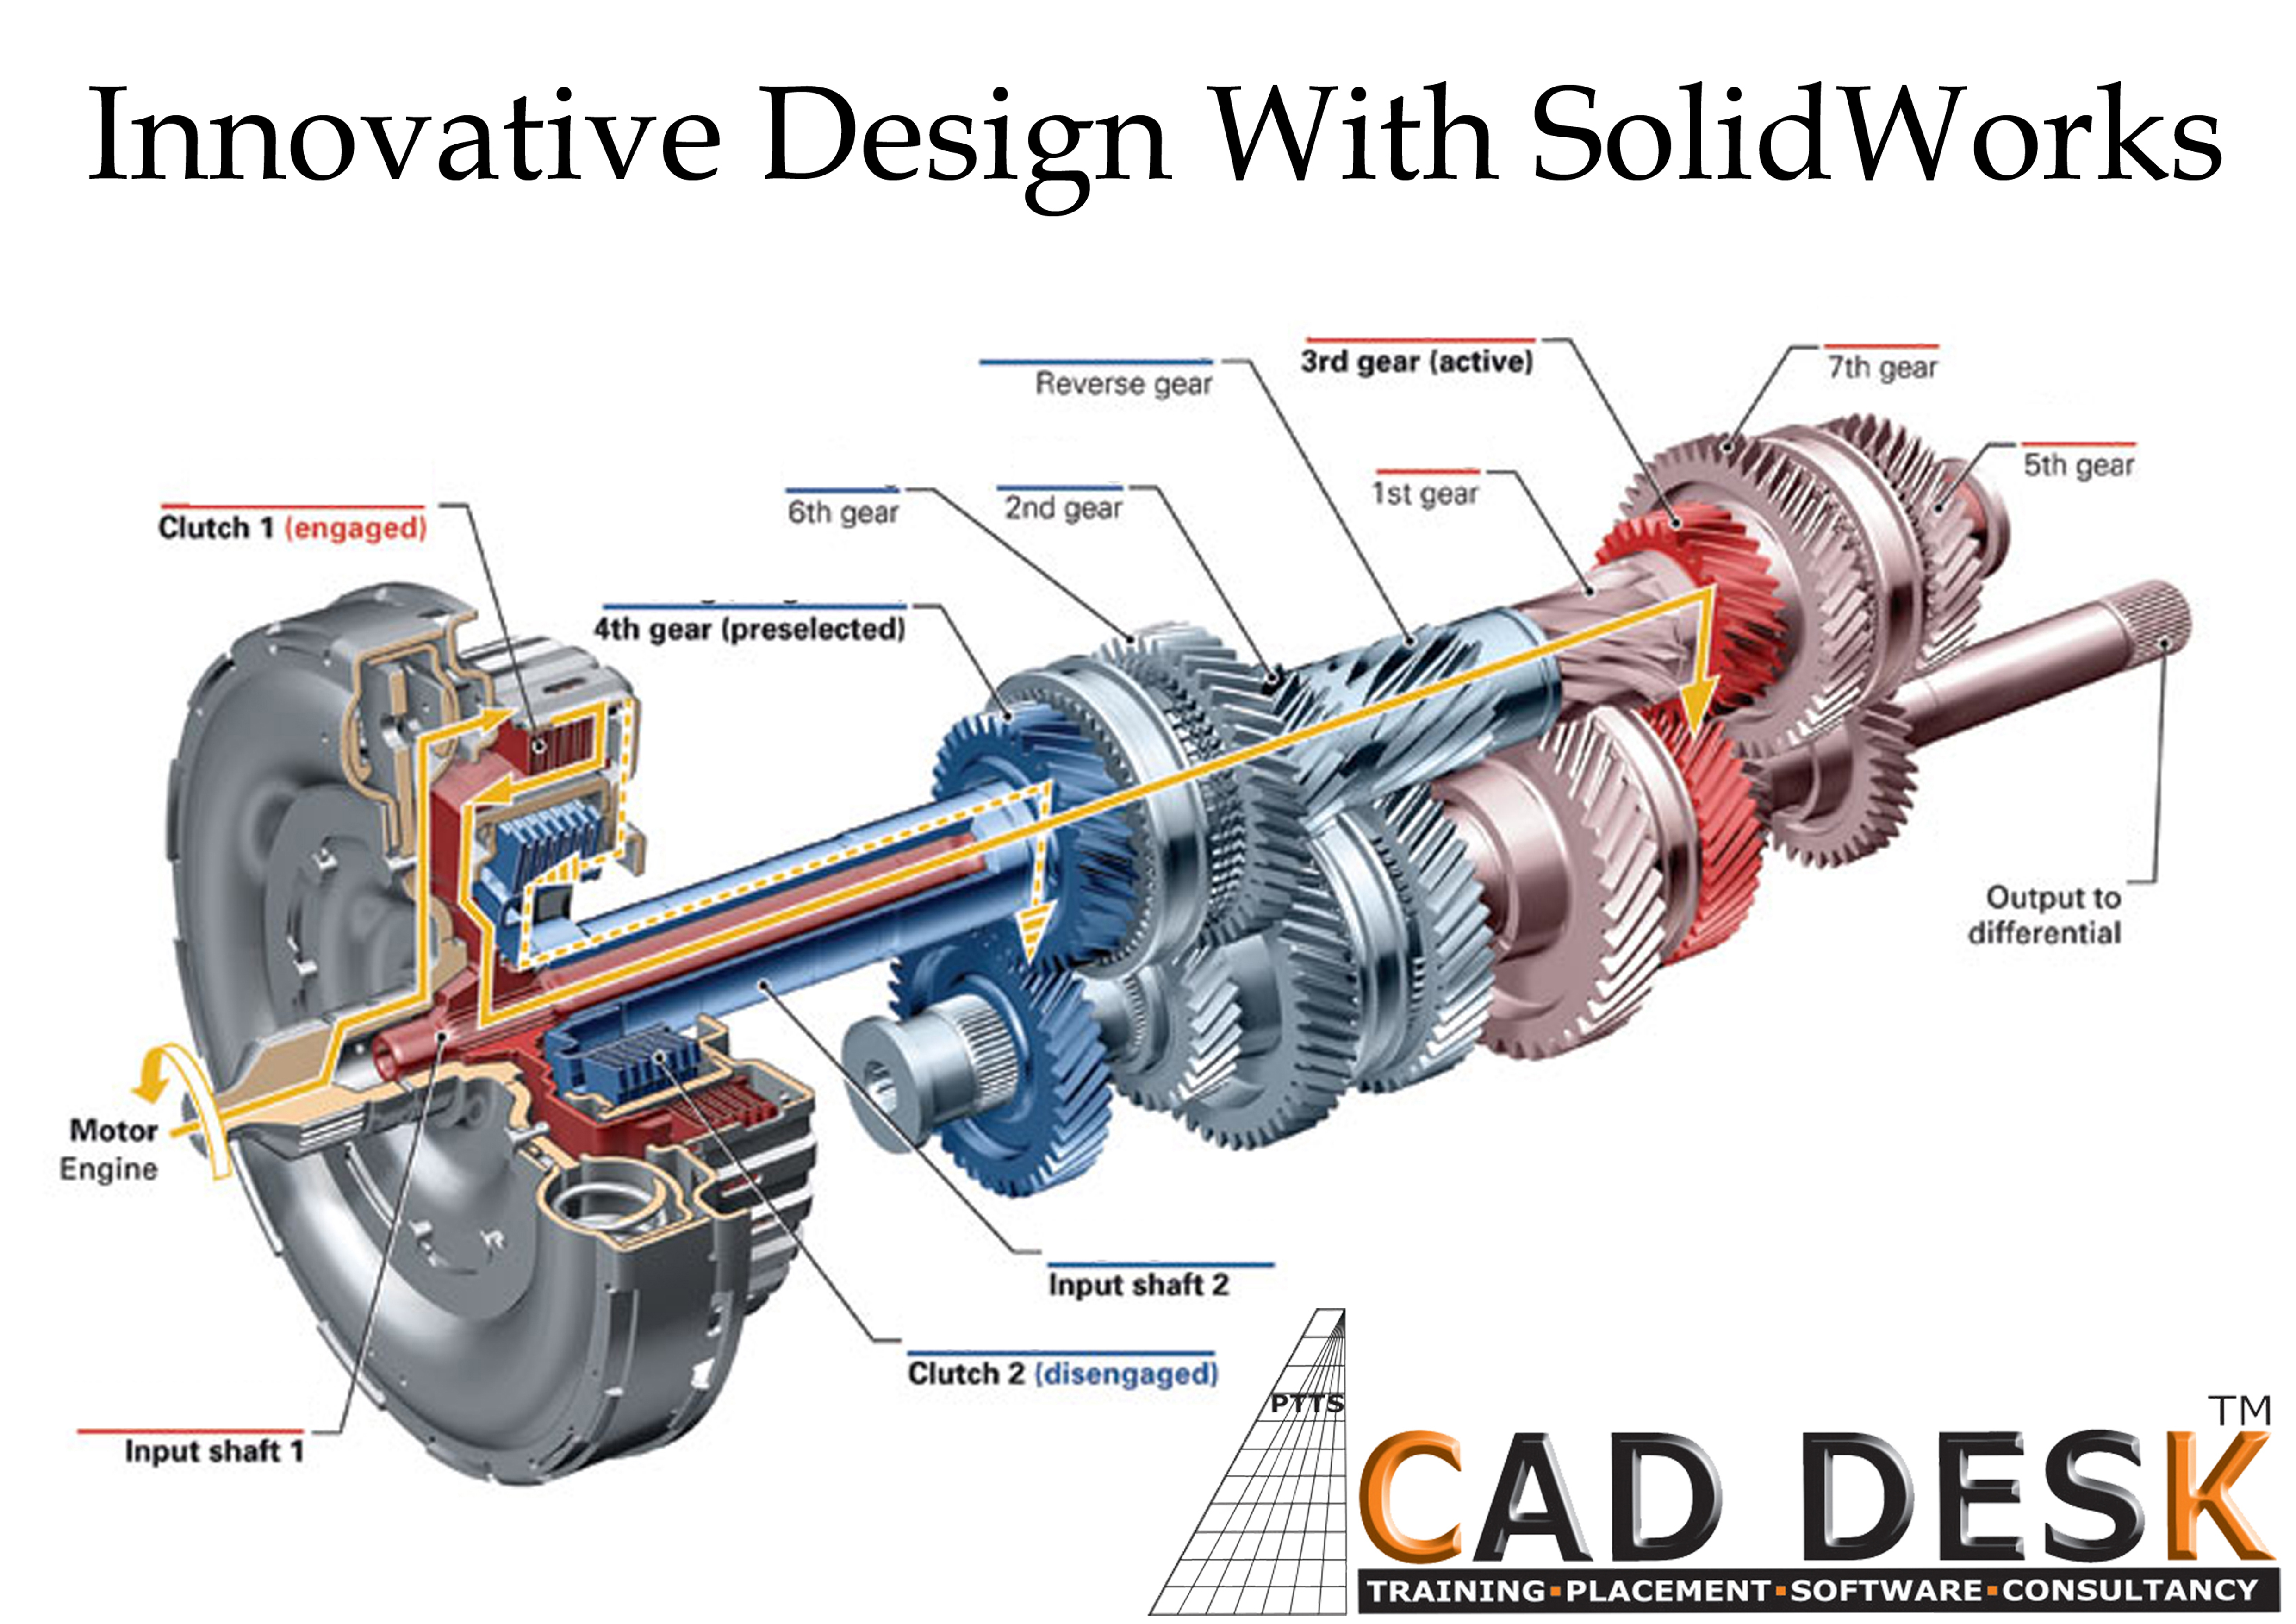 ARE YOU LOOKING FOR EVENING TIME BATCH FOR LEARNING CAD SOFTWARE. CadDesk Delhi, best institute in West Delhi now opens till 9:00 pm in evening. new SOLIDWORKS and AutoCAD batch starting from 21st August.  For more information call at 9205135507